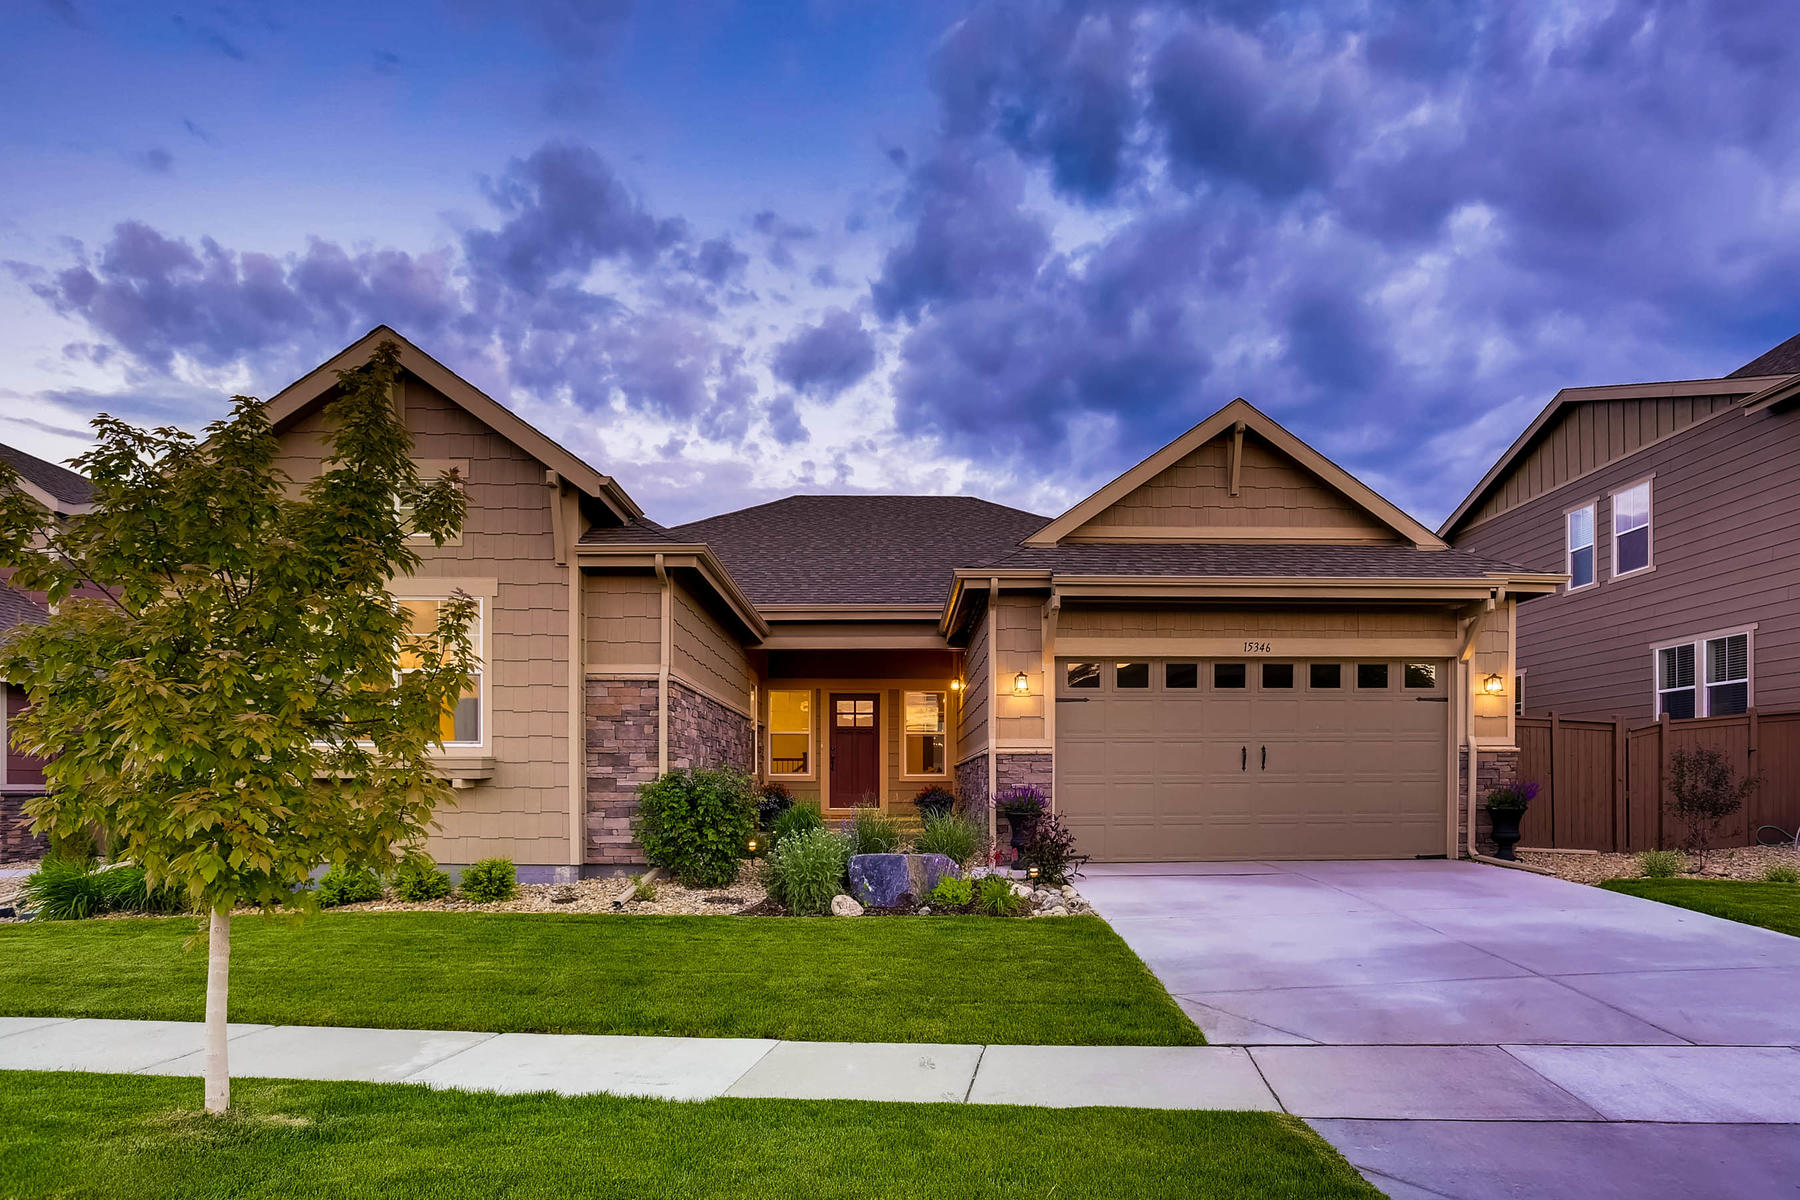 Single Family Home for Active at Luxurious And Open Ranch Style Home 15346 West 51st Avenue Golden, Colorado 80403 United States